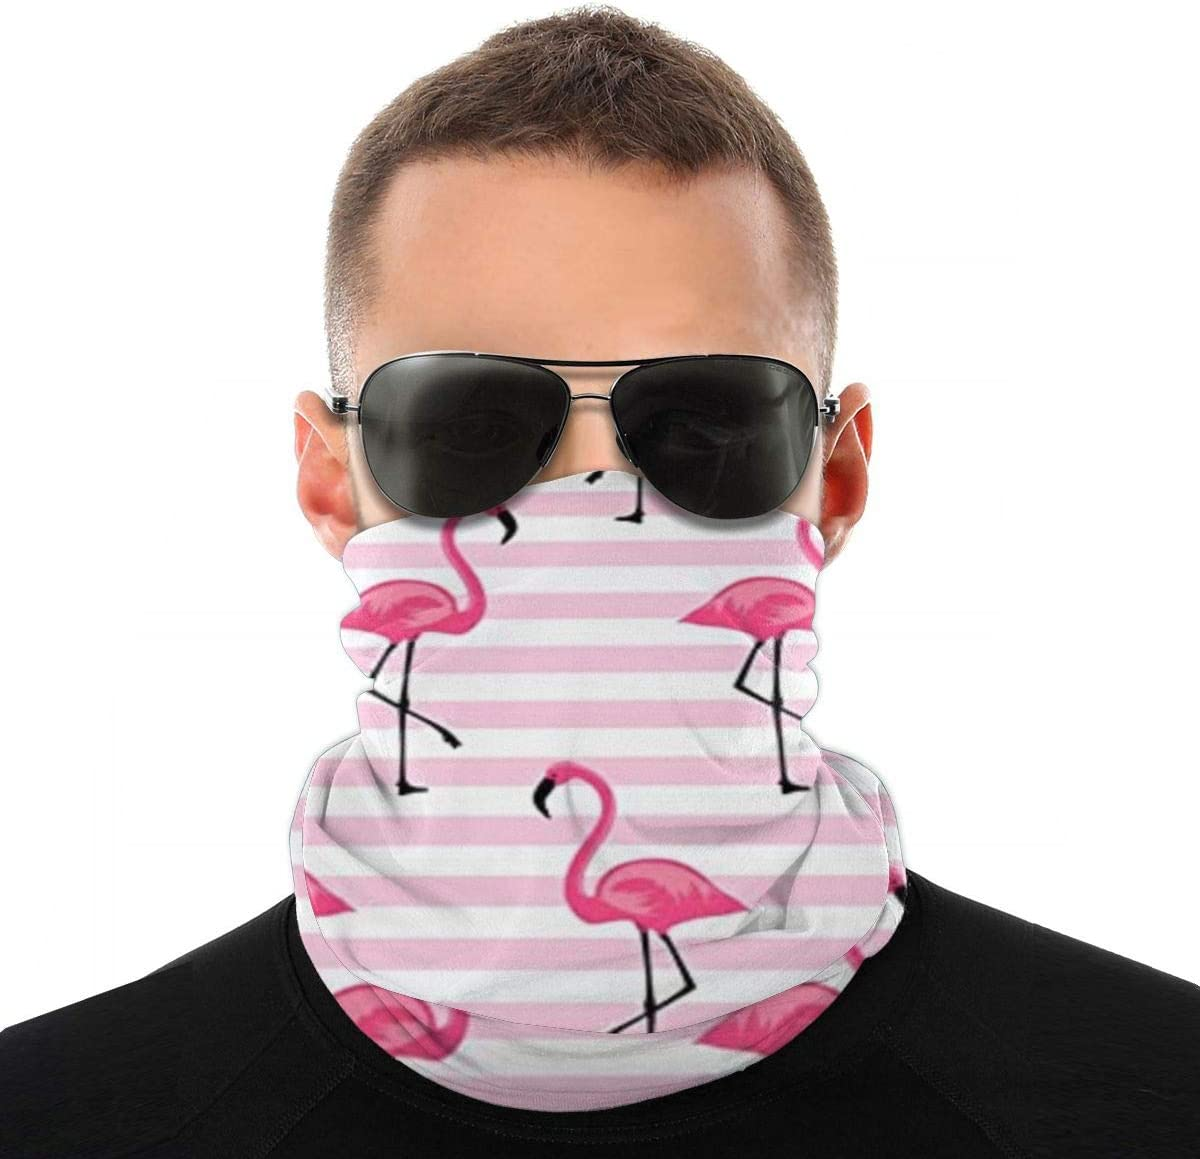 Pink Flamingo Versatile Multifunction Headwear Neck Gaiter Balaclava Helmet Liner Riding Face Cover For Kids Women Men Outdoors UV Protection